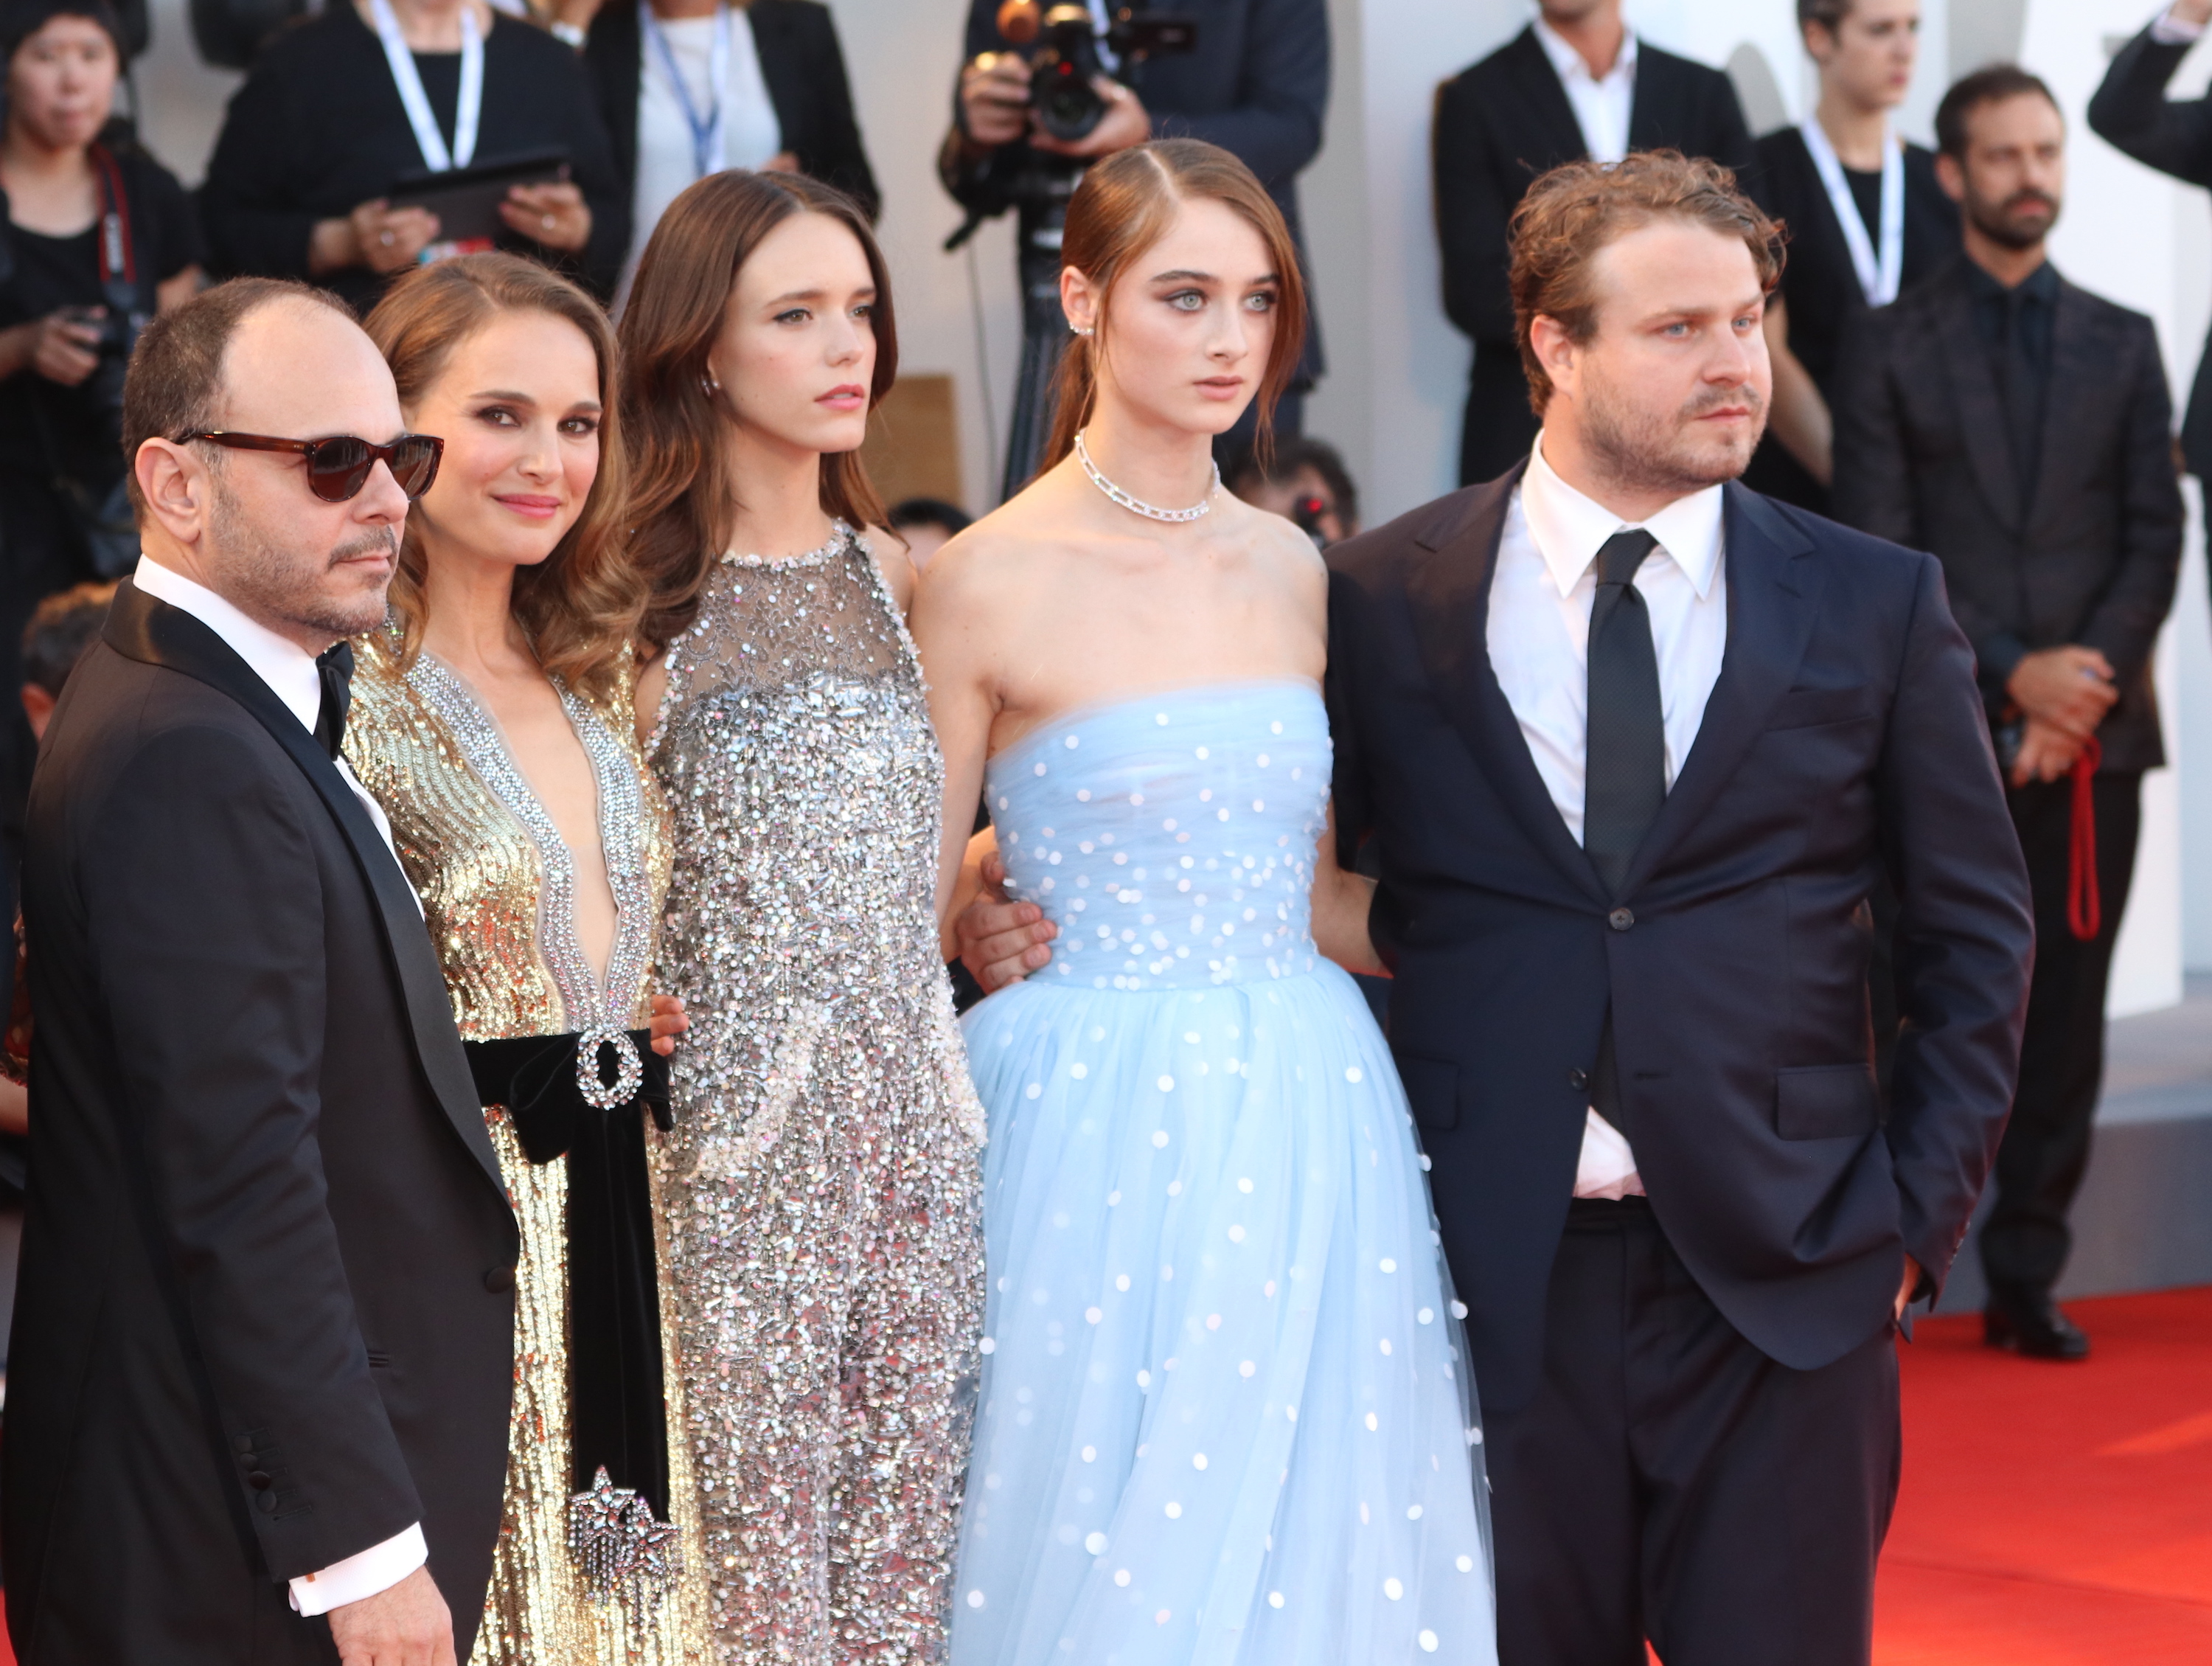 Venezia 2018: il cast sul red carpet di Vox Lux